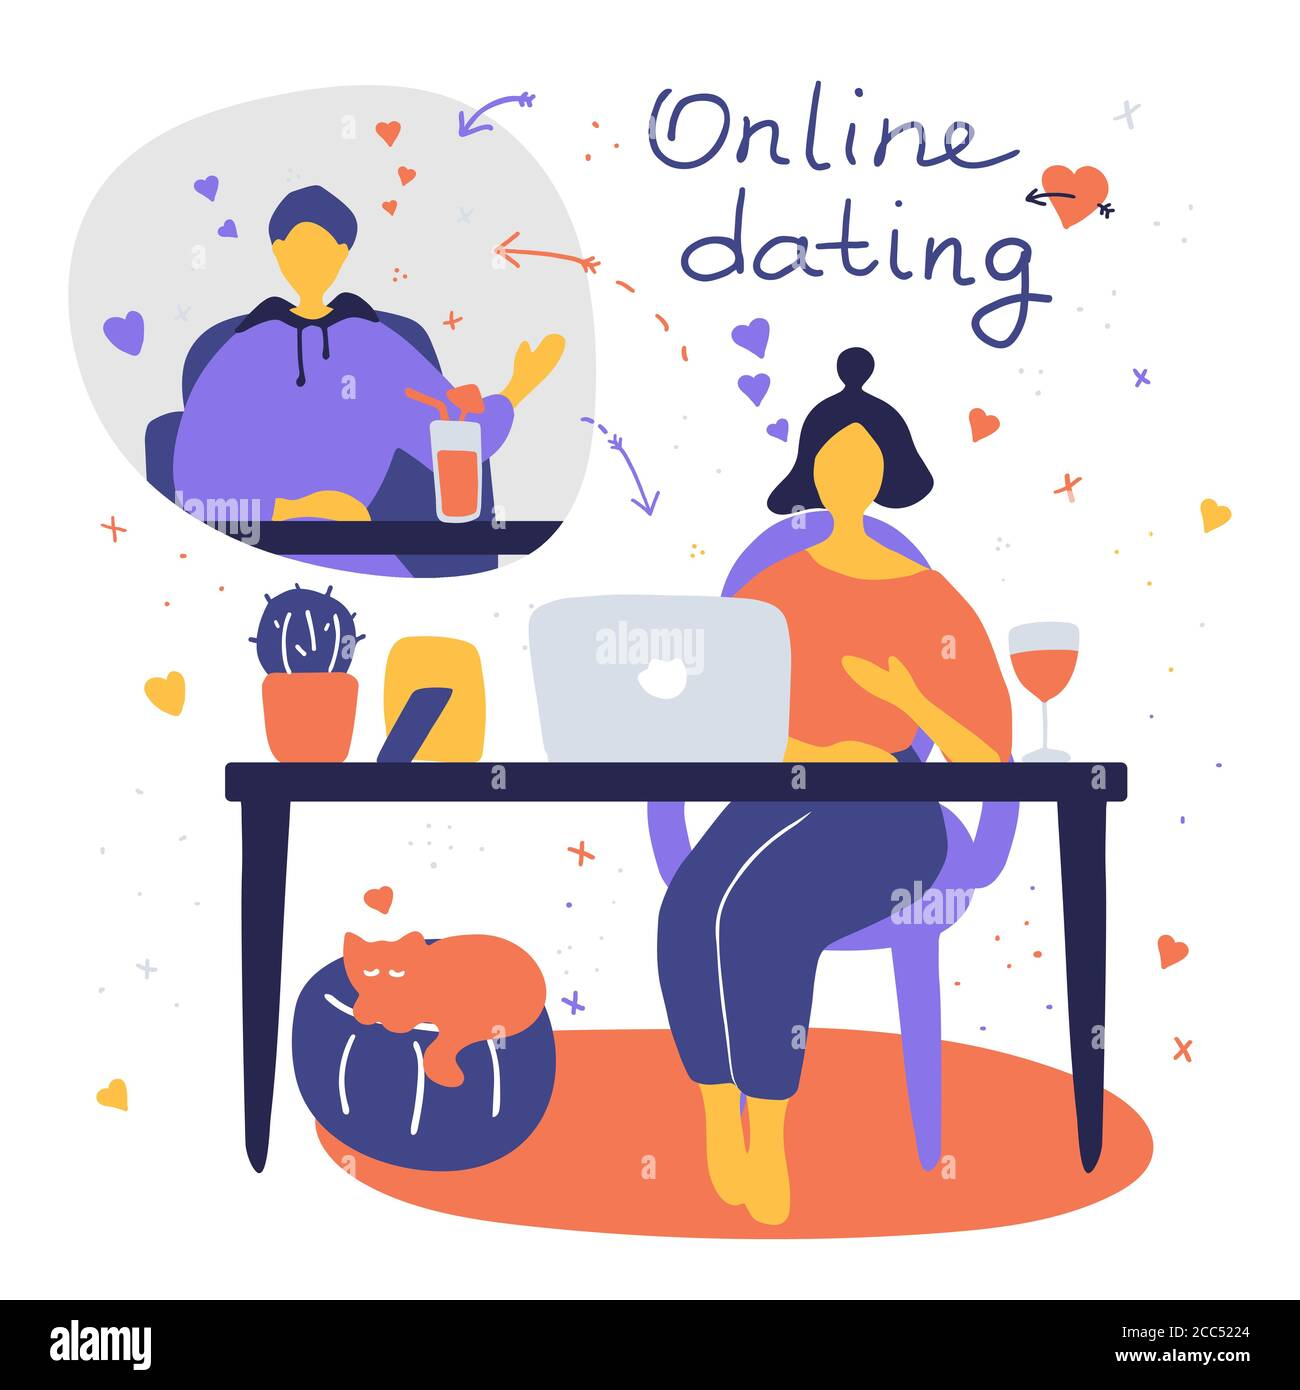 Couple chatting online during pandemic. Man and woman flirting online on dating site. Virtual dating concept. Vector flat illustration Stock Vector